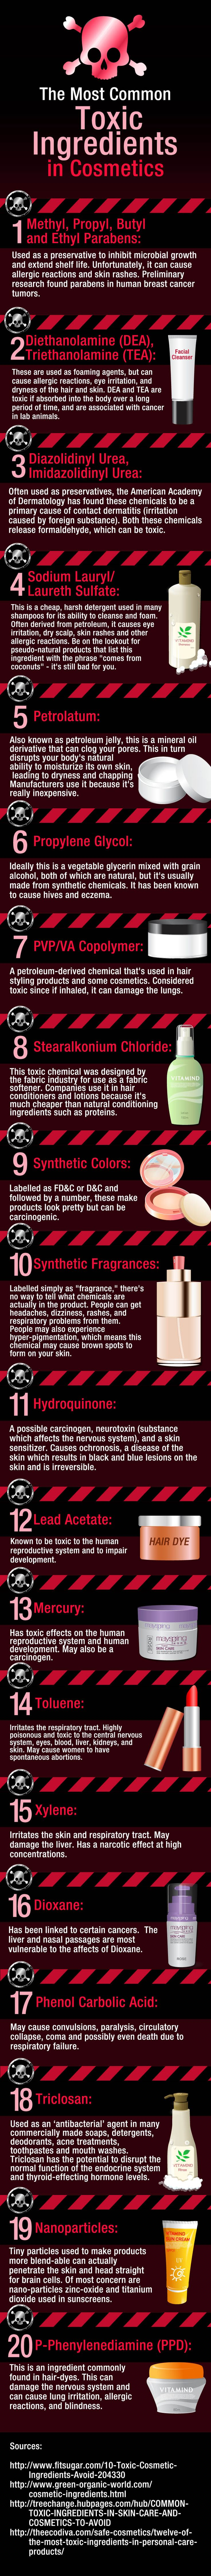 Better be safe than sorry. Stay away from these chemicals and switch your skincare routine to all natural products. Your skin will be grateful!